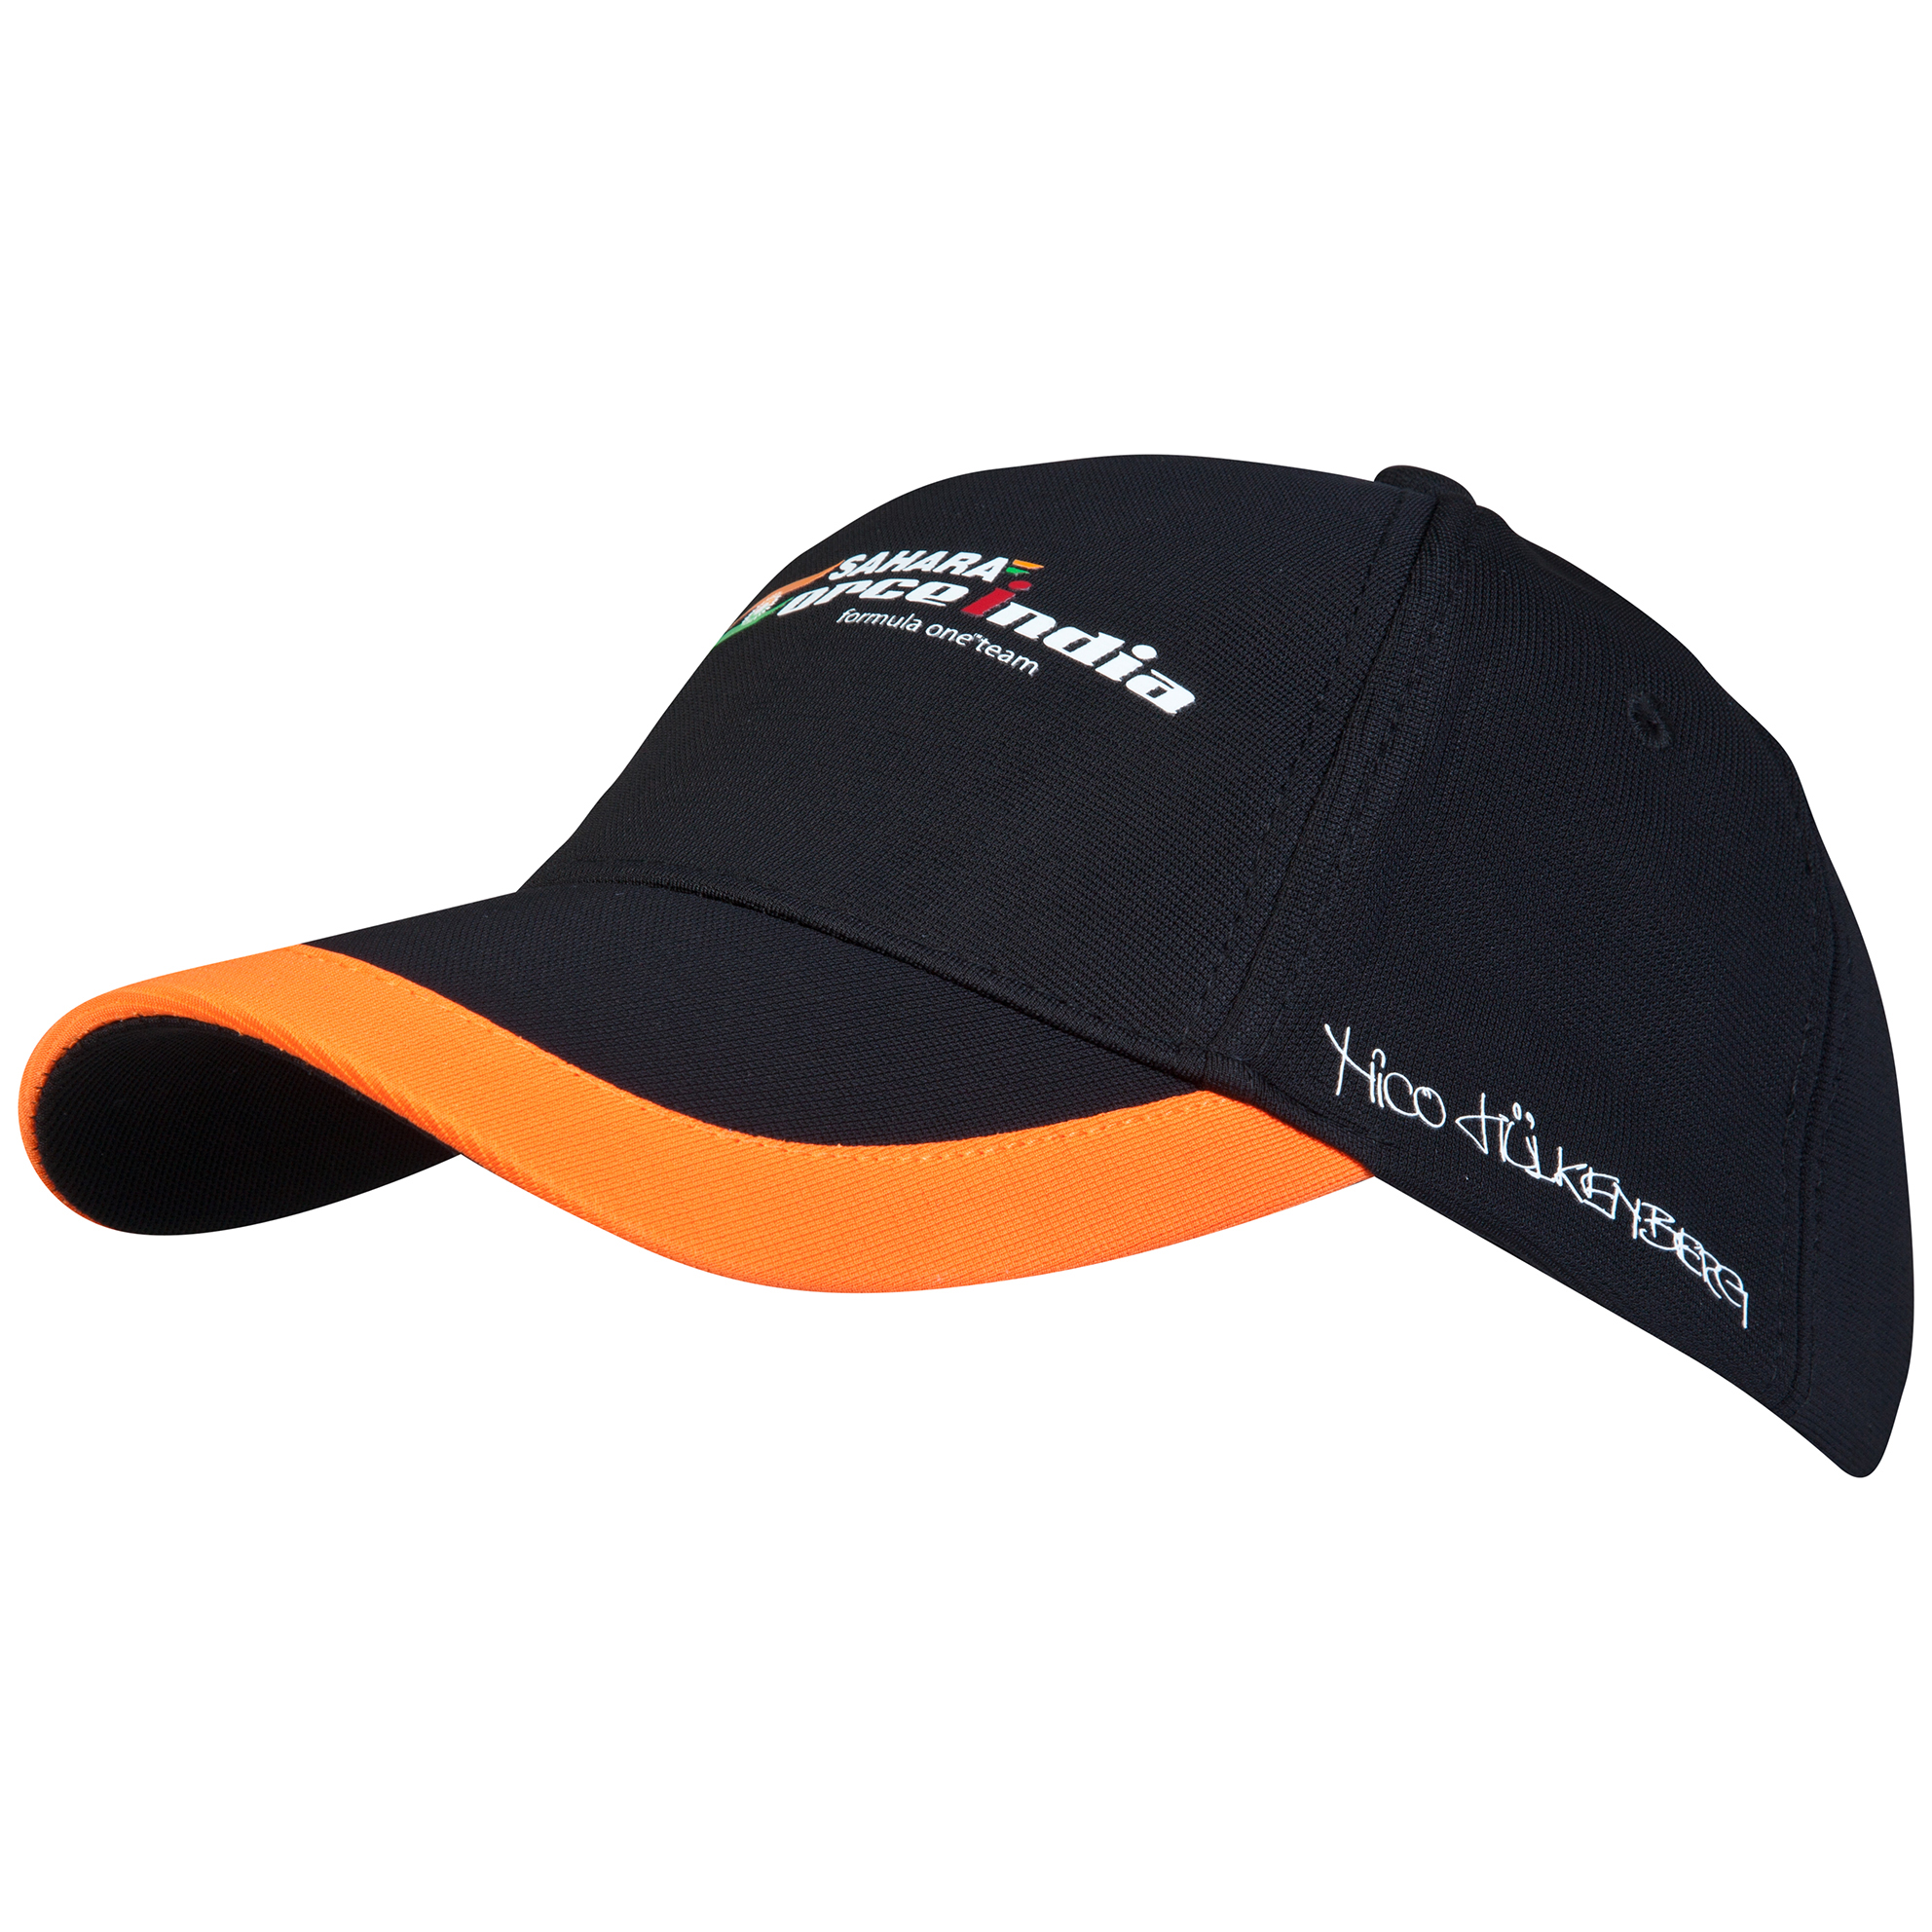 Sahara Force India Hulkenberg Driver Cap